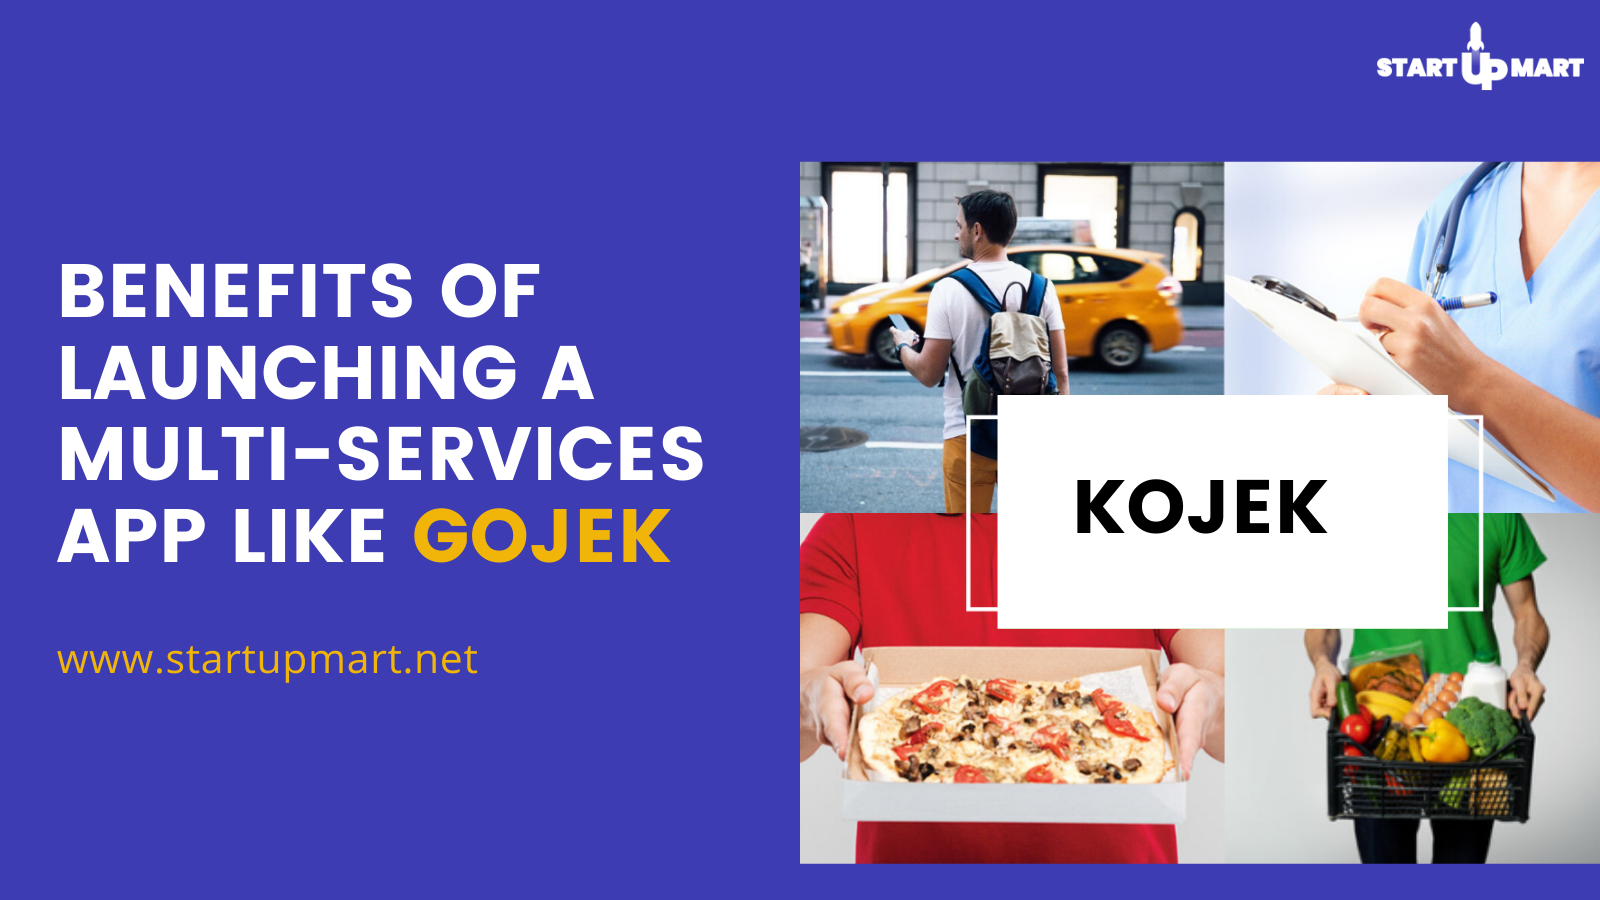 Benefits Of Launching an On Demand Multi Services App Like Gojek